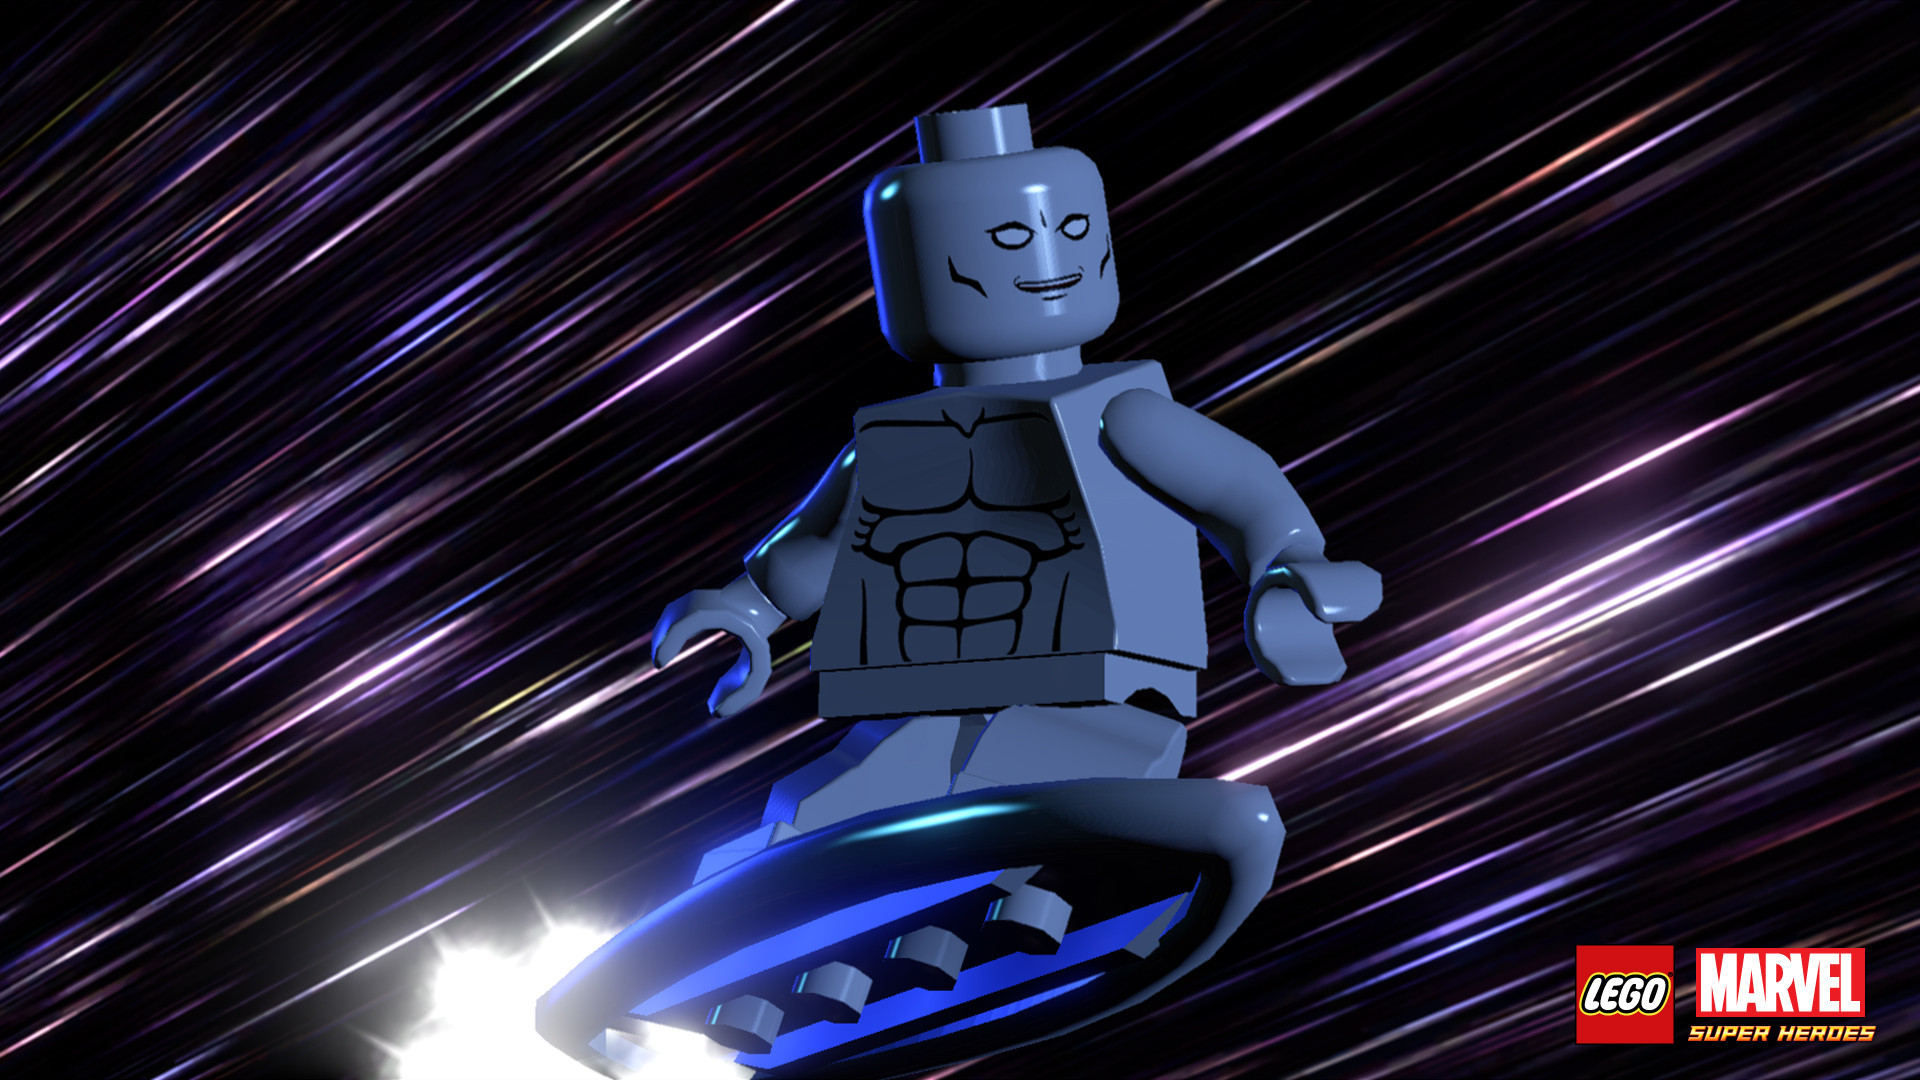 1920x1080 The Silver Surfer as he appears in Lego Marvel Superheroes